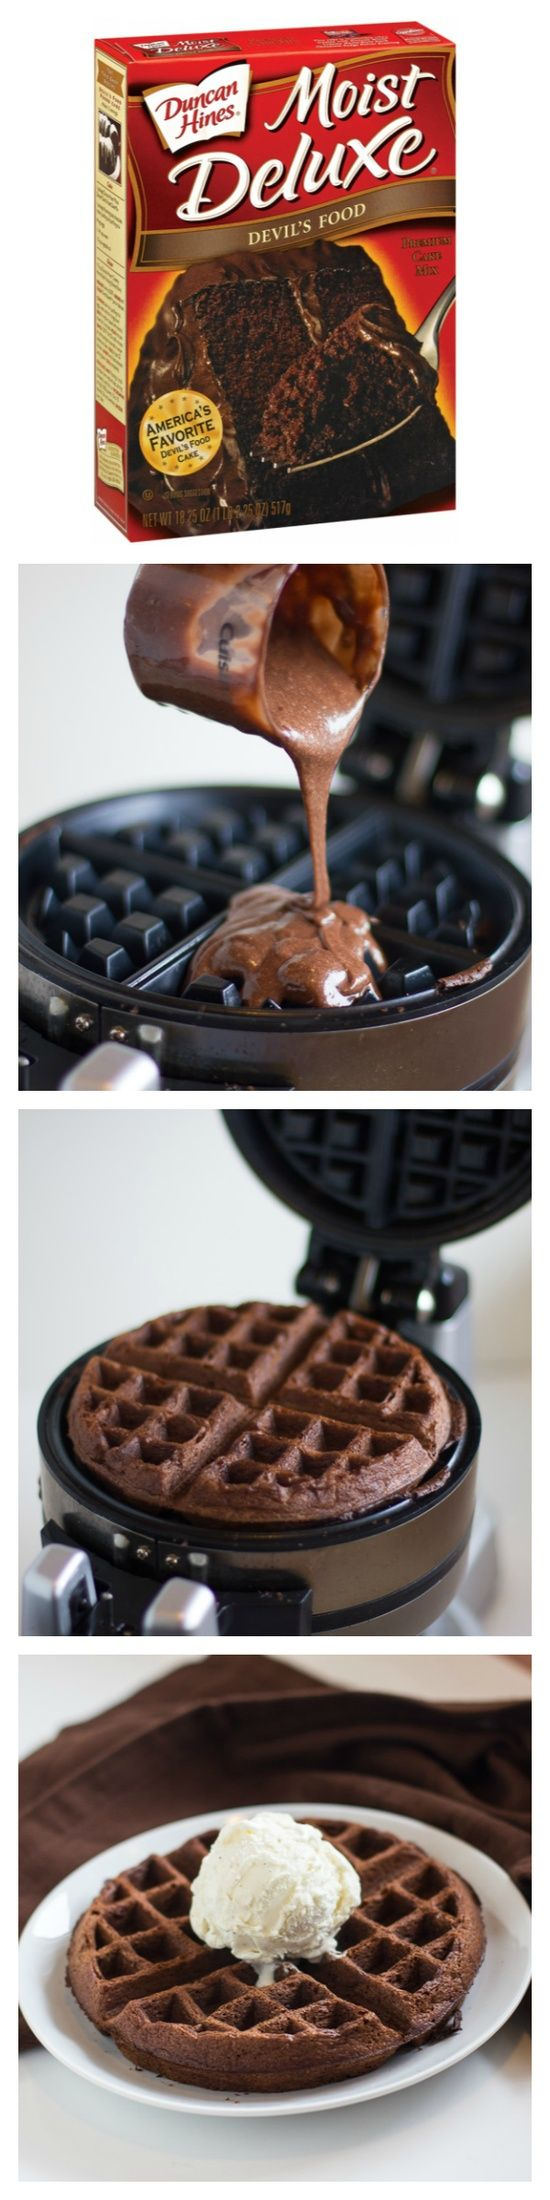 Cake Mix Waffles - make the cake batter as instructed on the box then make them just like you do waffles. Top with your favorite ice cream!. Great for a birthday morning breakfast!